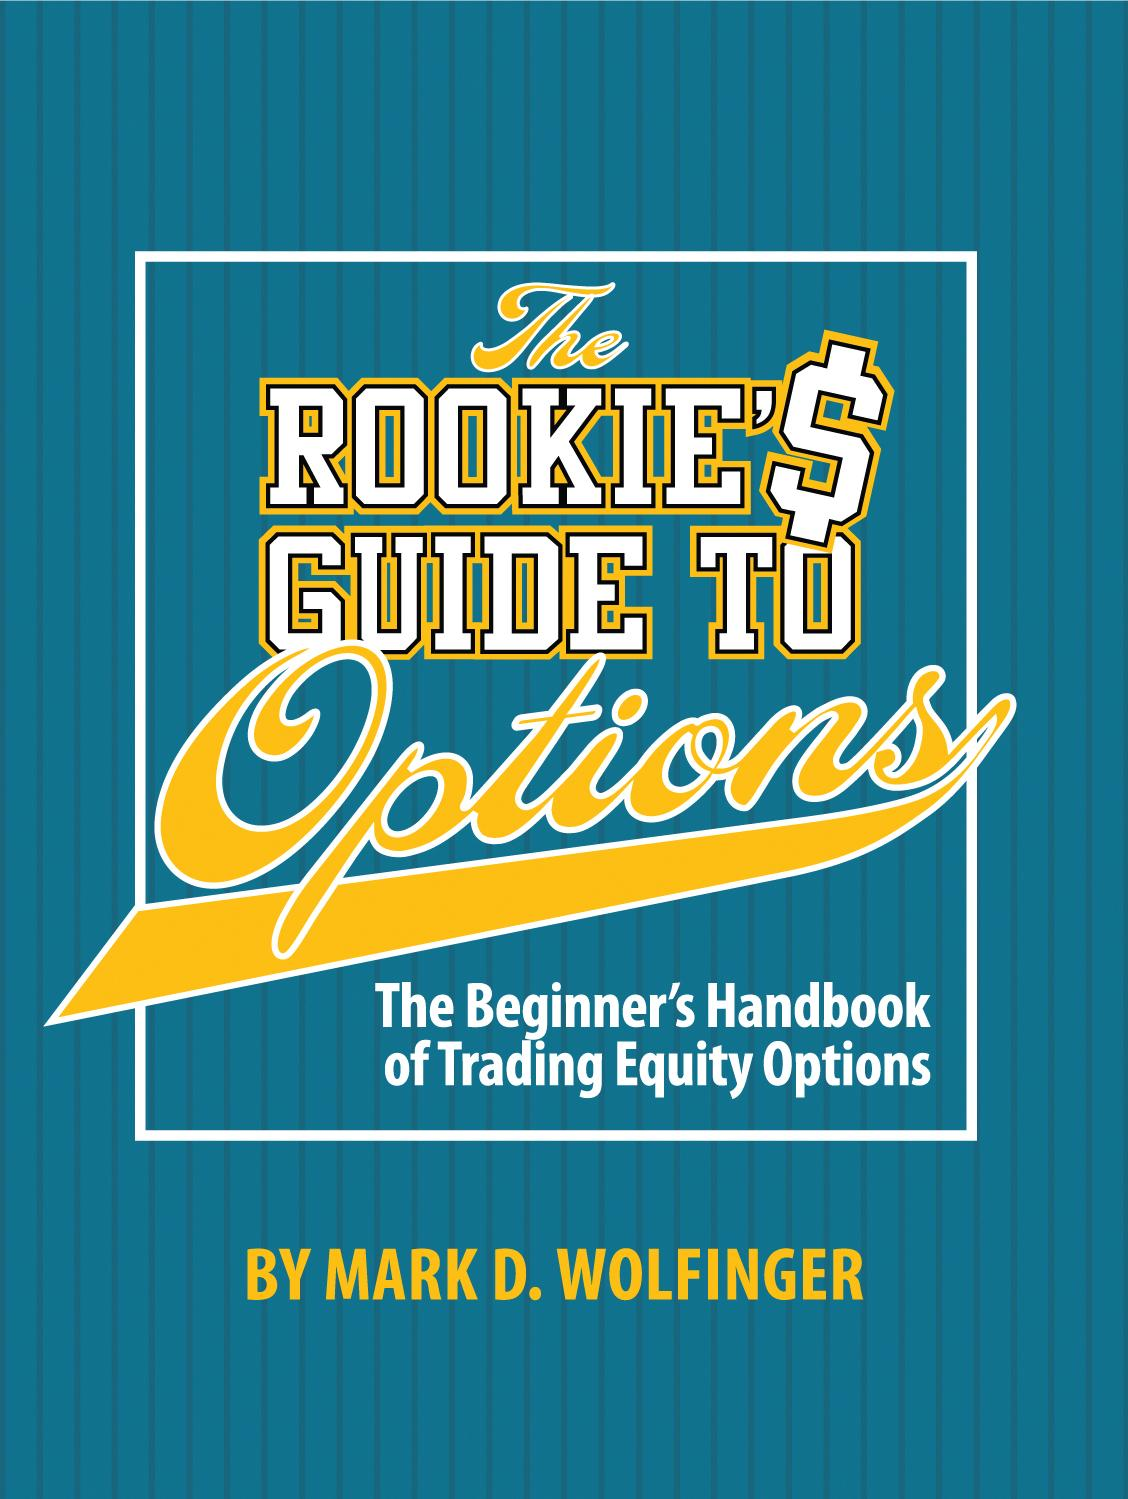 The Rookie's Guide Front